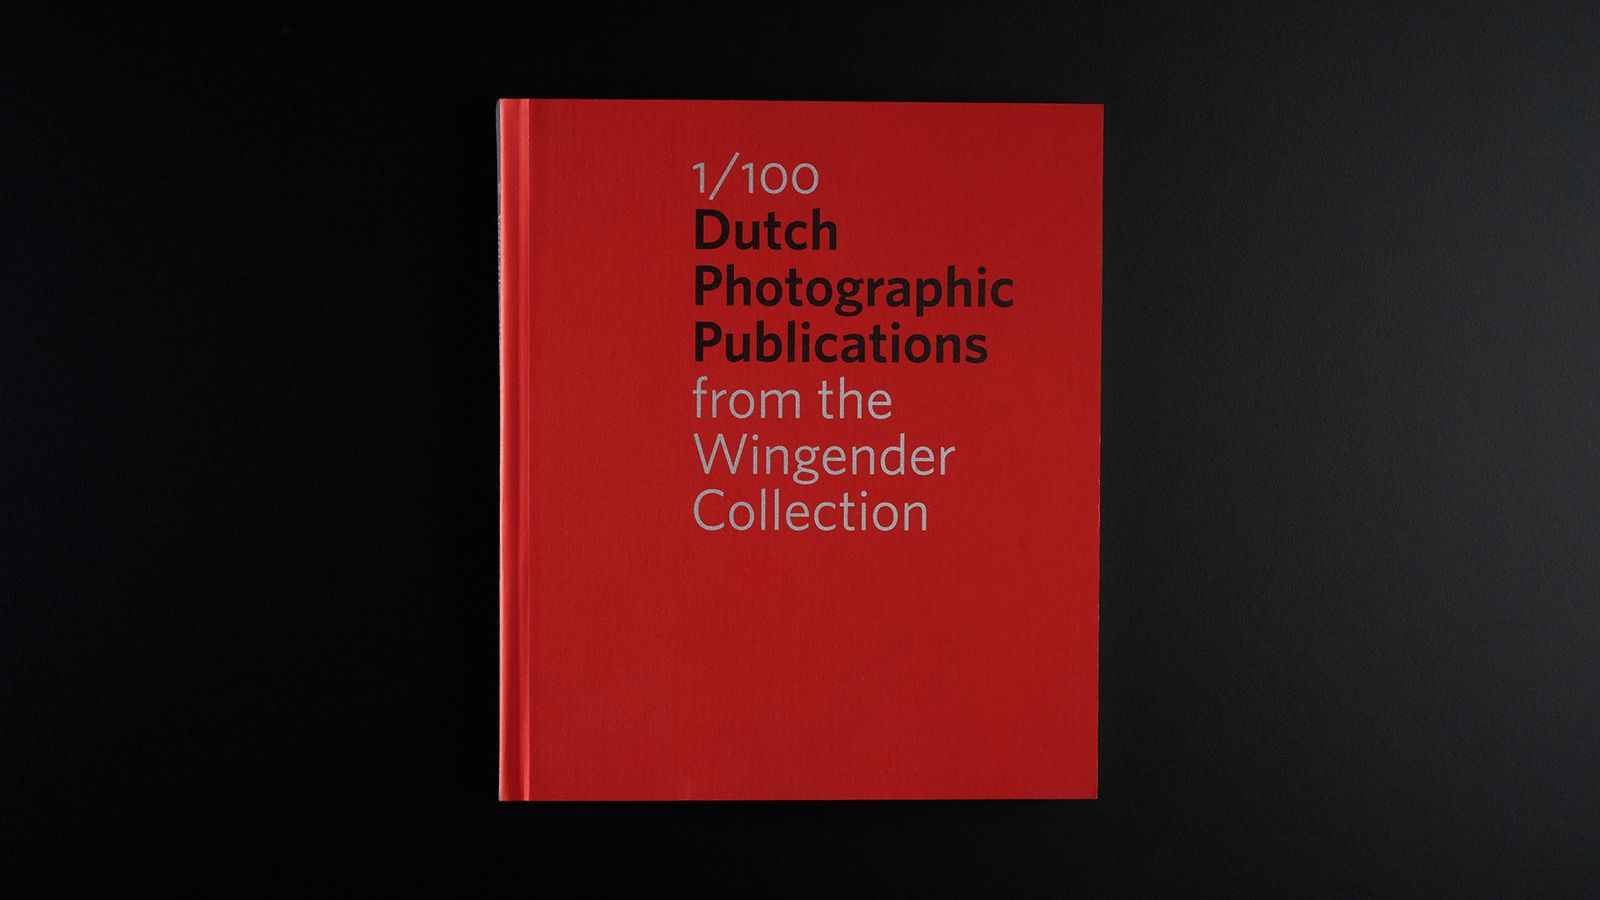 Dutch photographic publicatons from the Wingender Collection - Cover.jpg